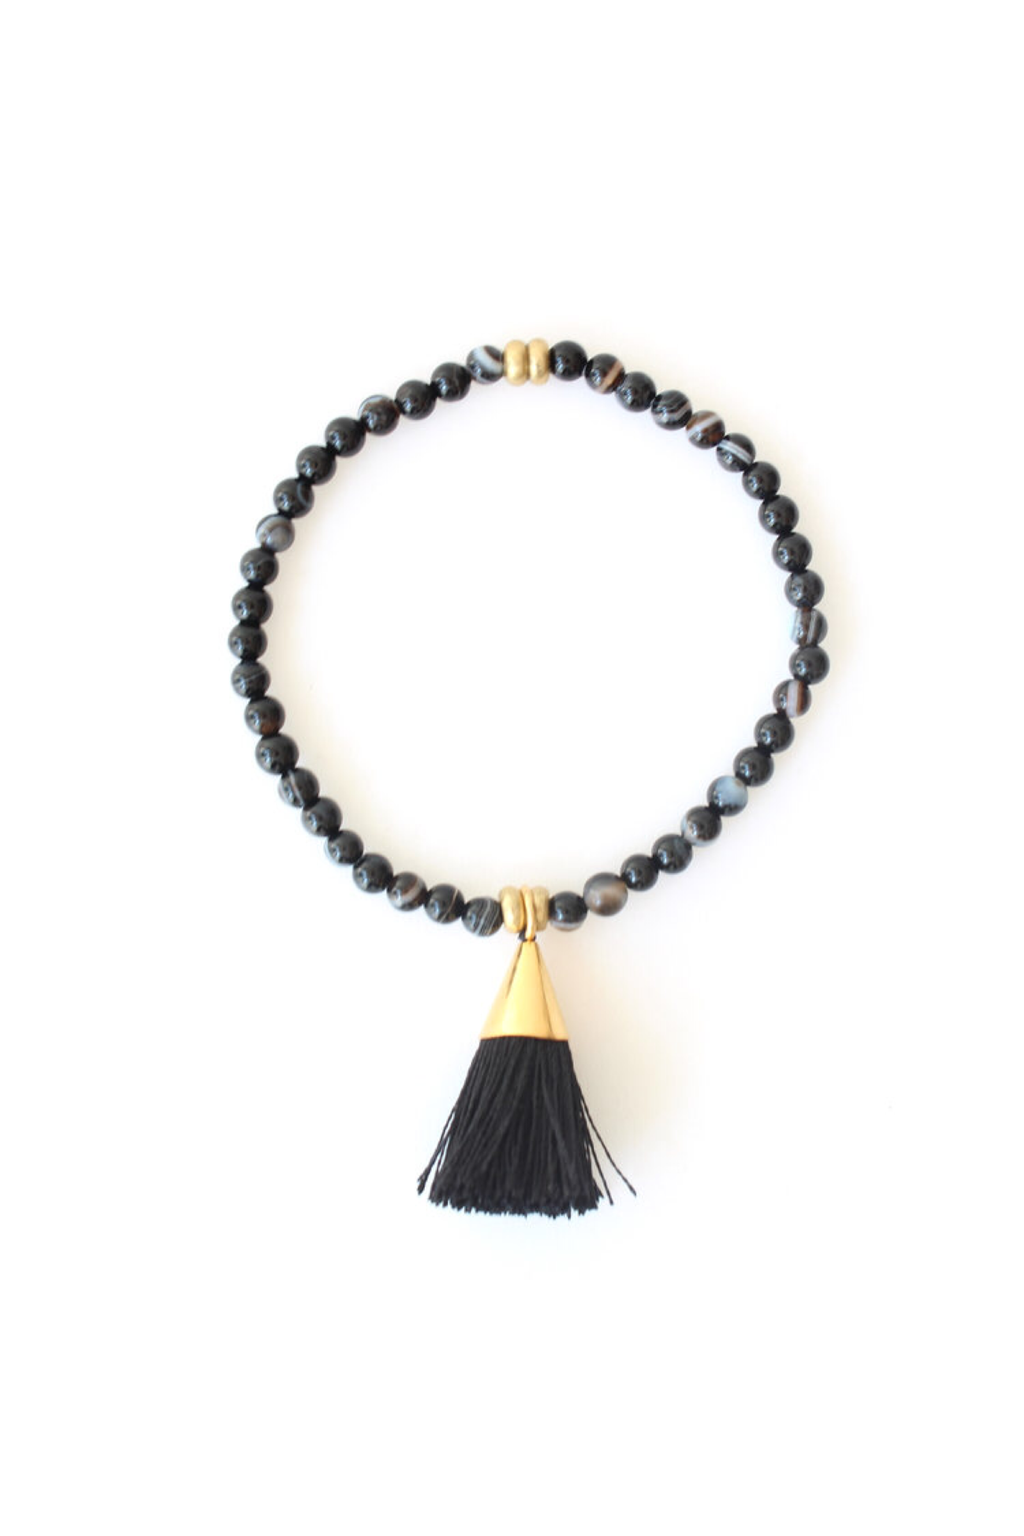 Black x Black Tassel Bracelet - ROSE MADE SHOP